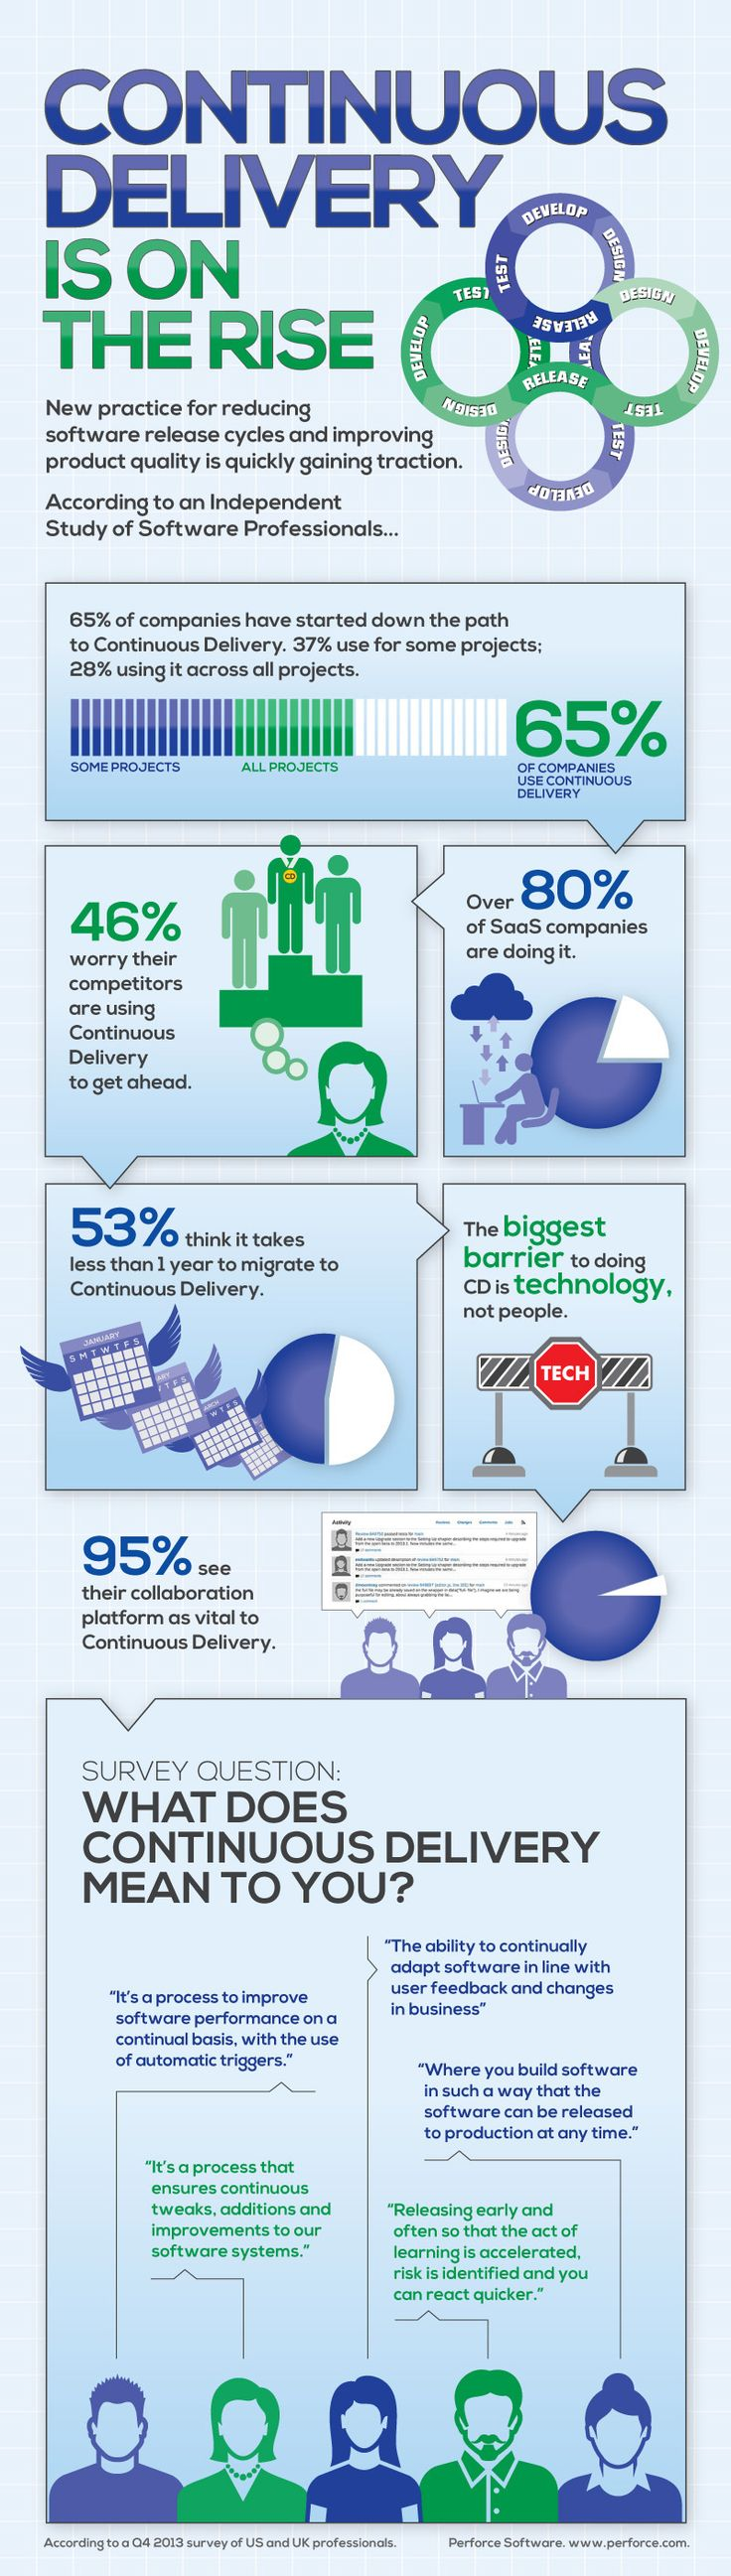 Continuous Delivery Adoption in an Infographic Nutshell | Perforce